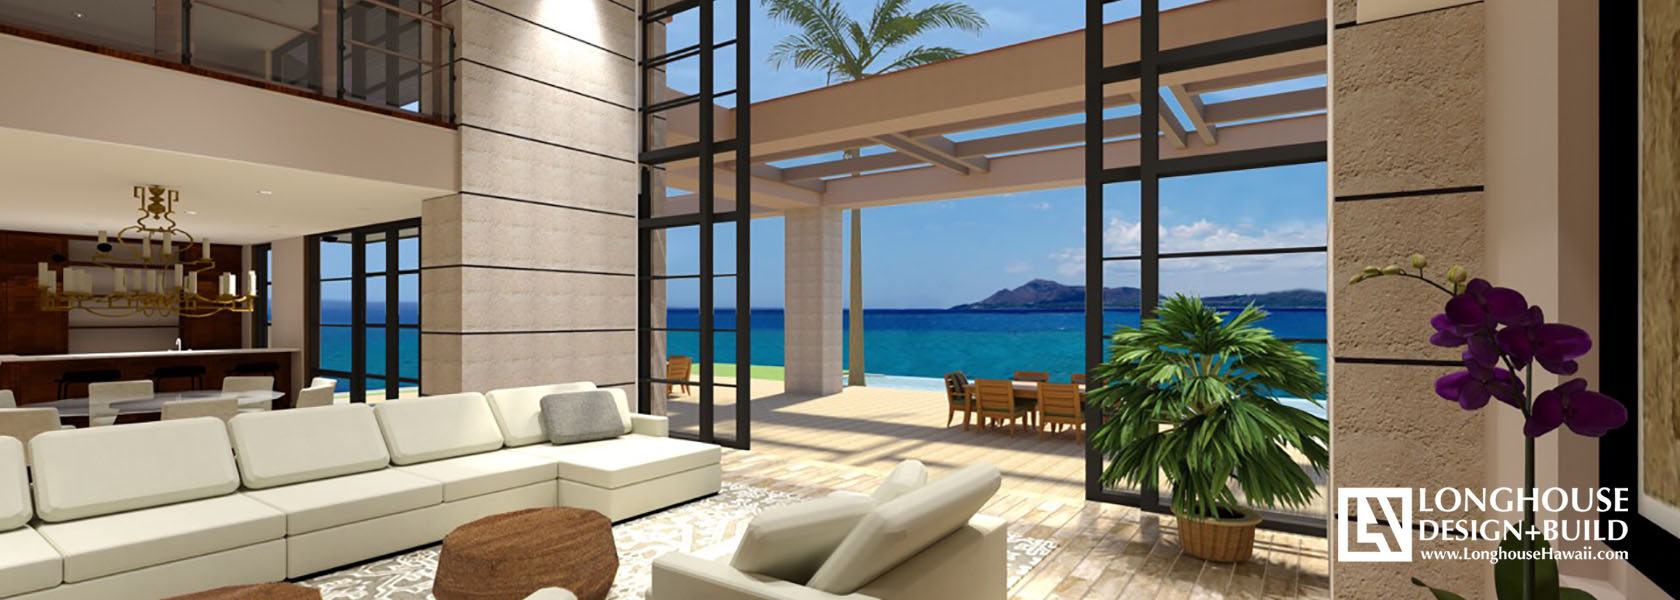 Mokulua Oceanfront - Hawaii Architects - Jeff Long